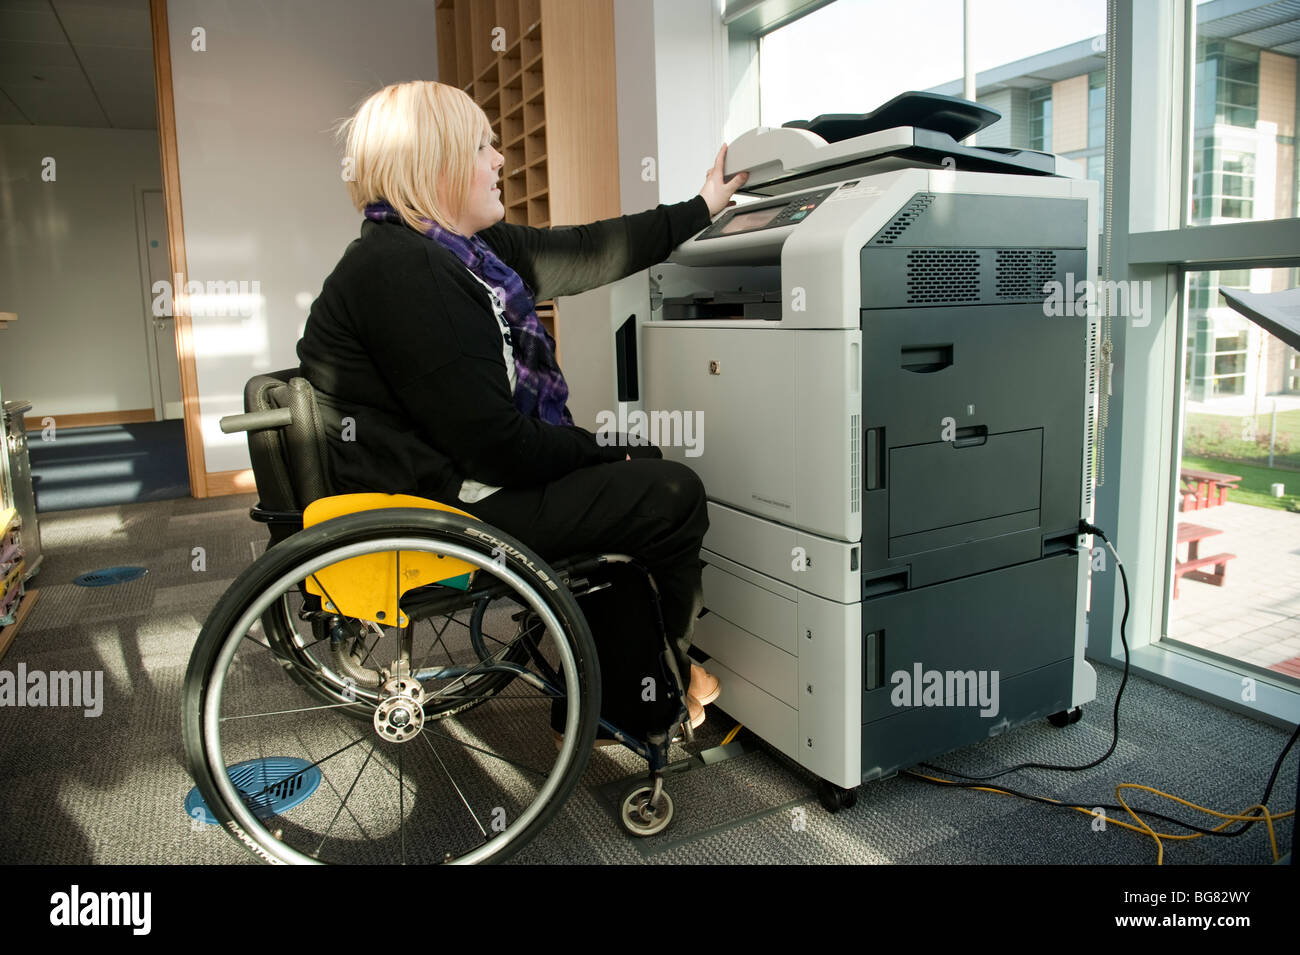 A young disabled woman in a wheelchair working using a photocopier machine in a modern office, UK - Stock Image